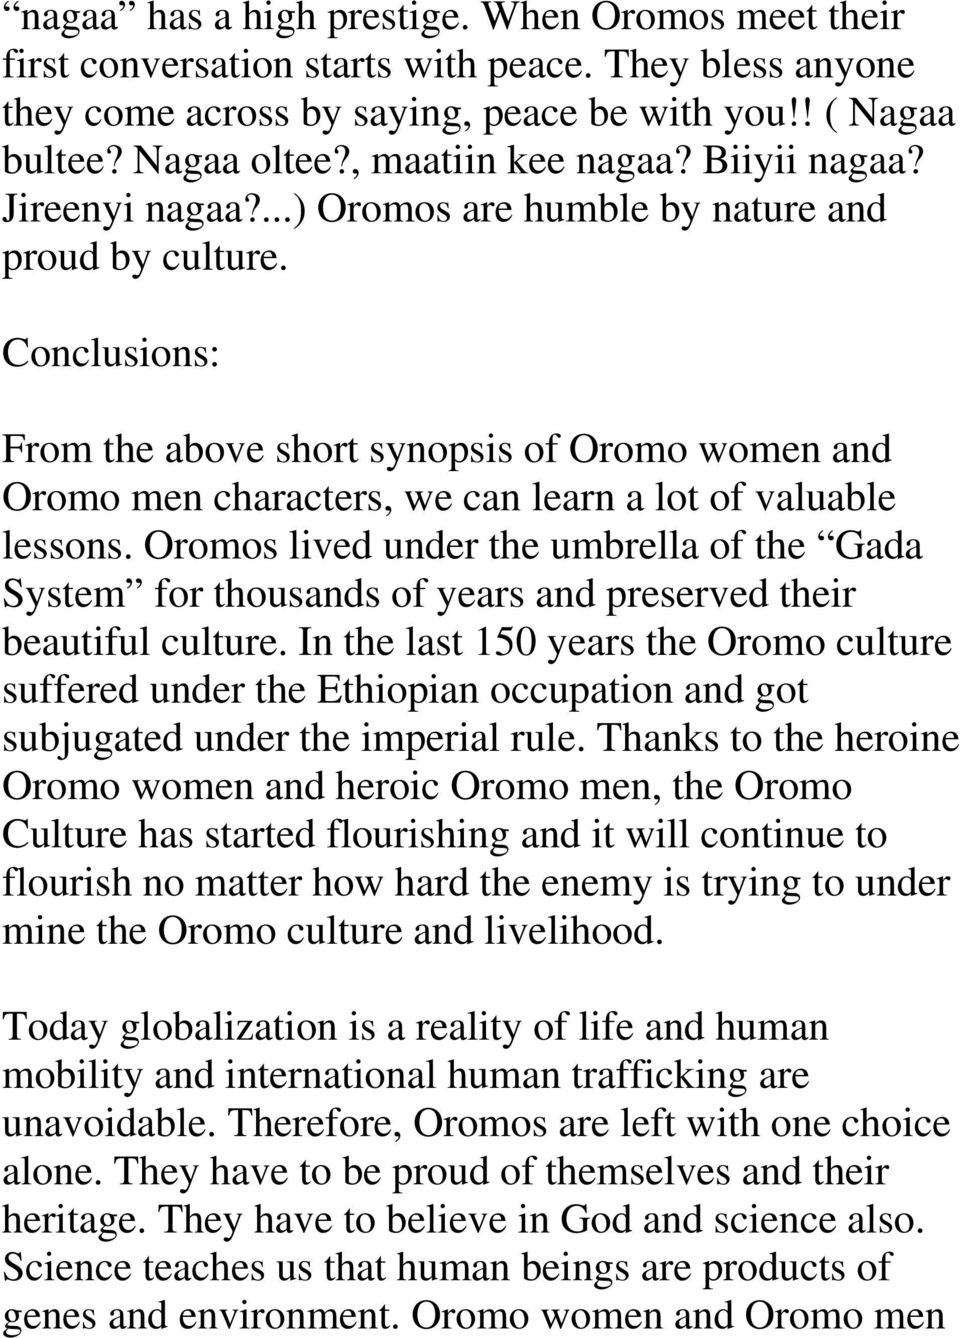 Oromo women are one of the most beautiful human beings  They